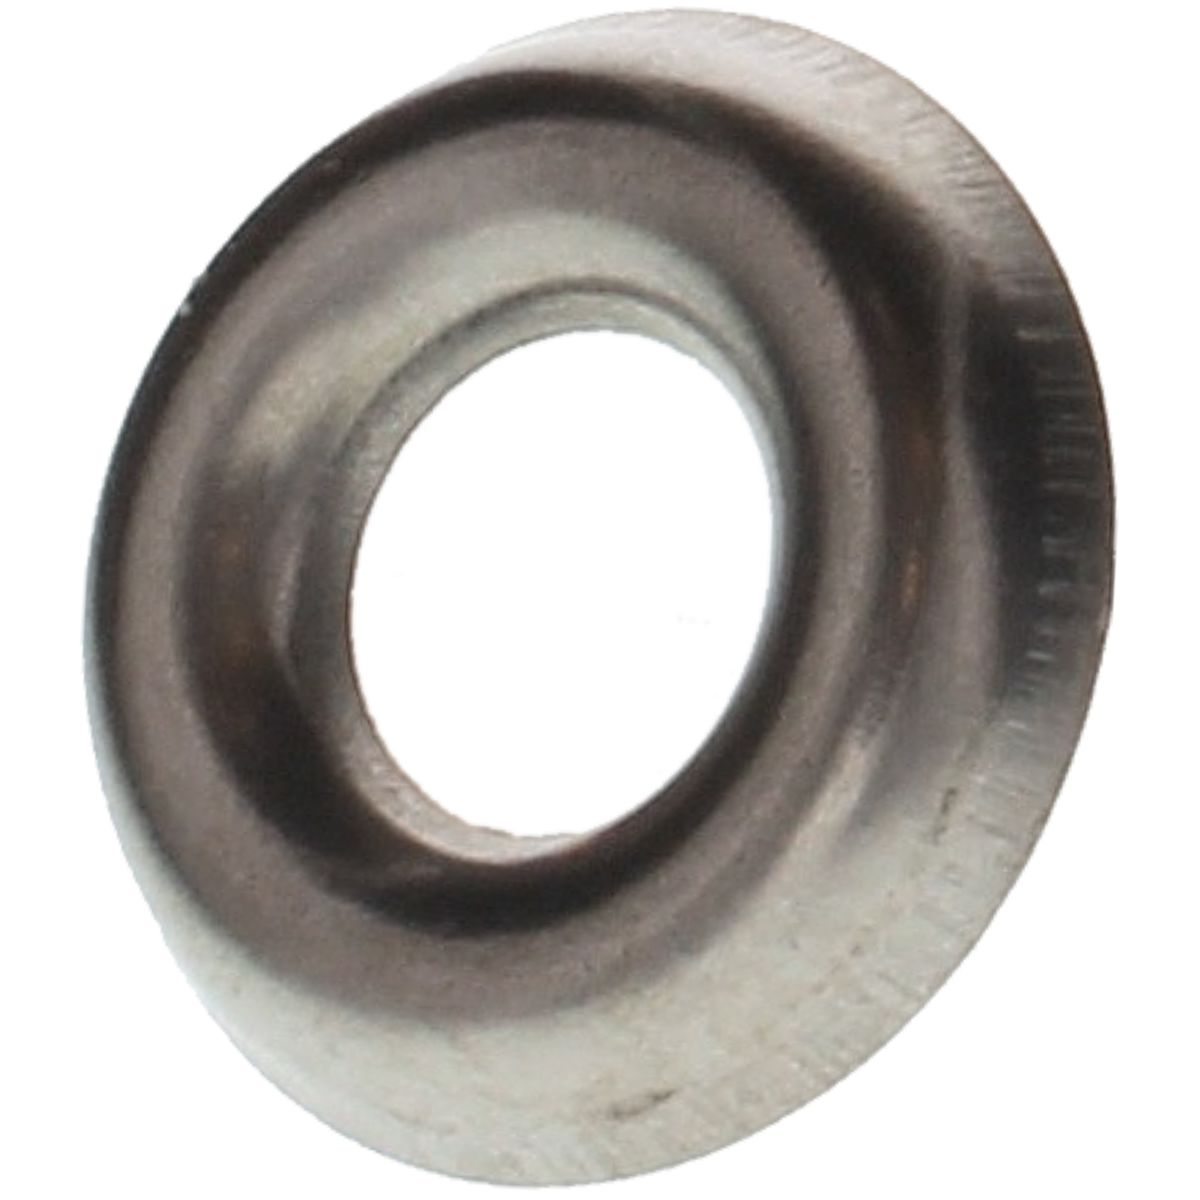 #14 Countersunk Finishing Washers — 18-8 Stainless Steel, 100/PKG